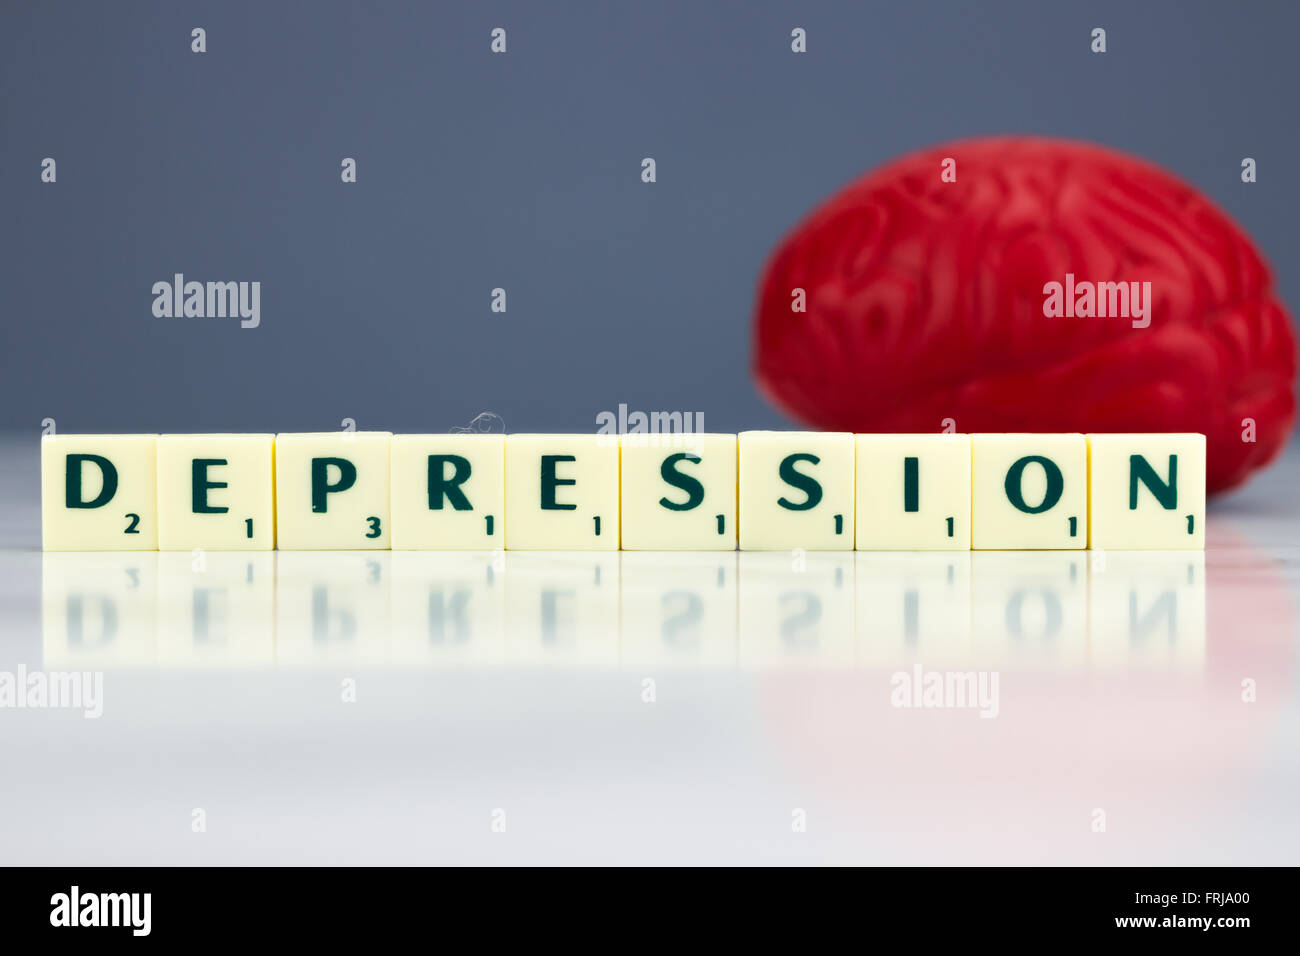 Red brain with depression sign on dark background - Stock Image